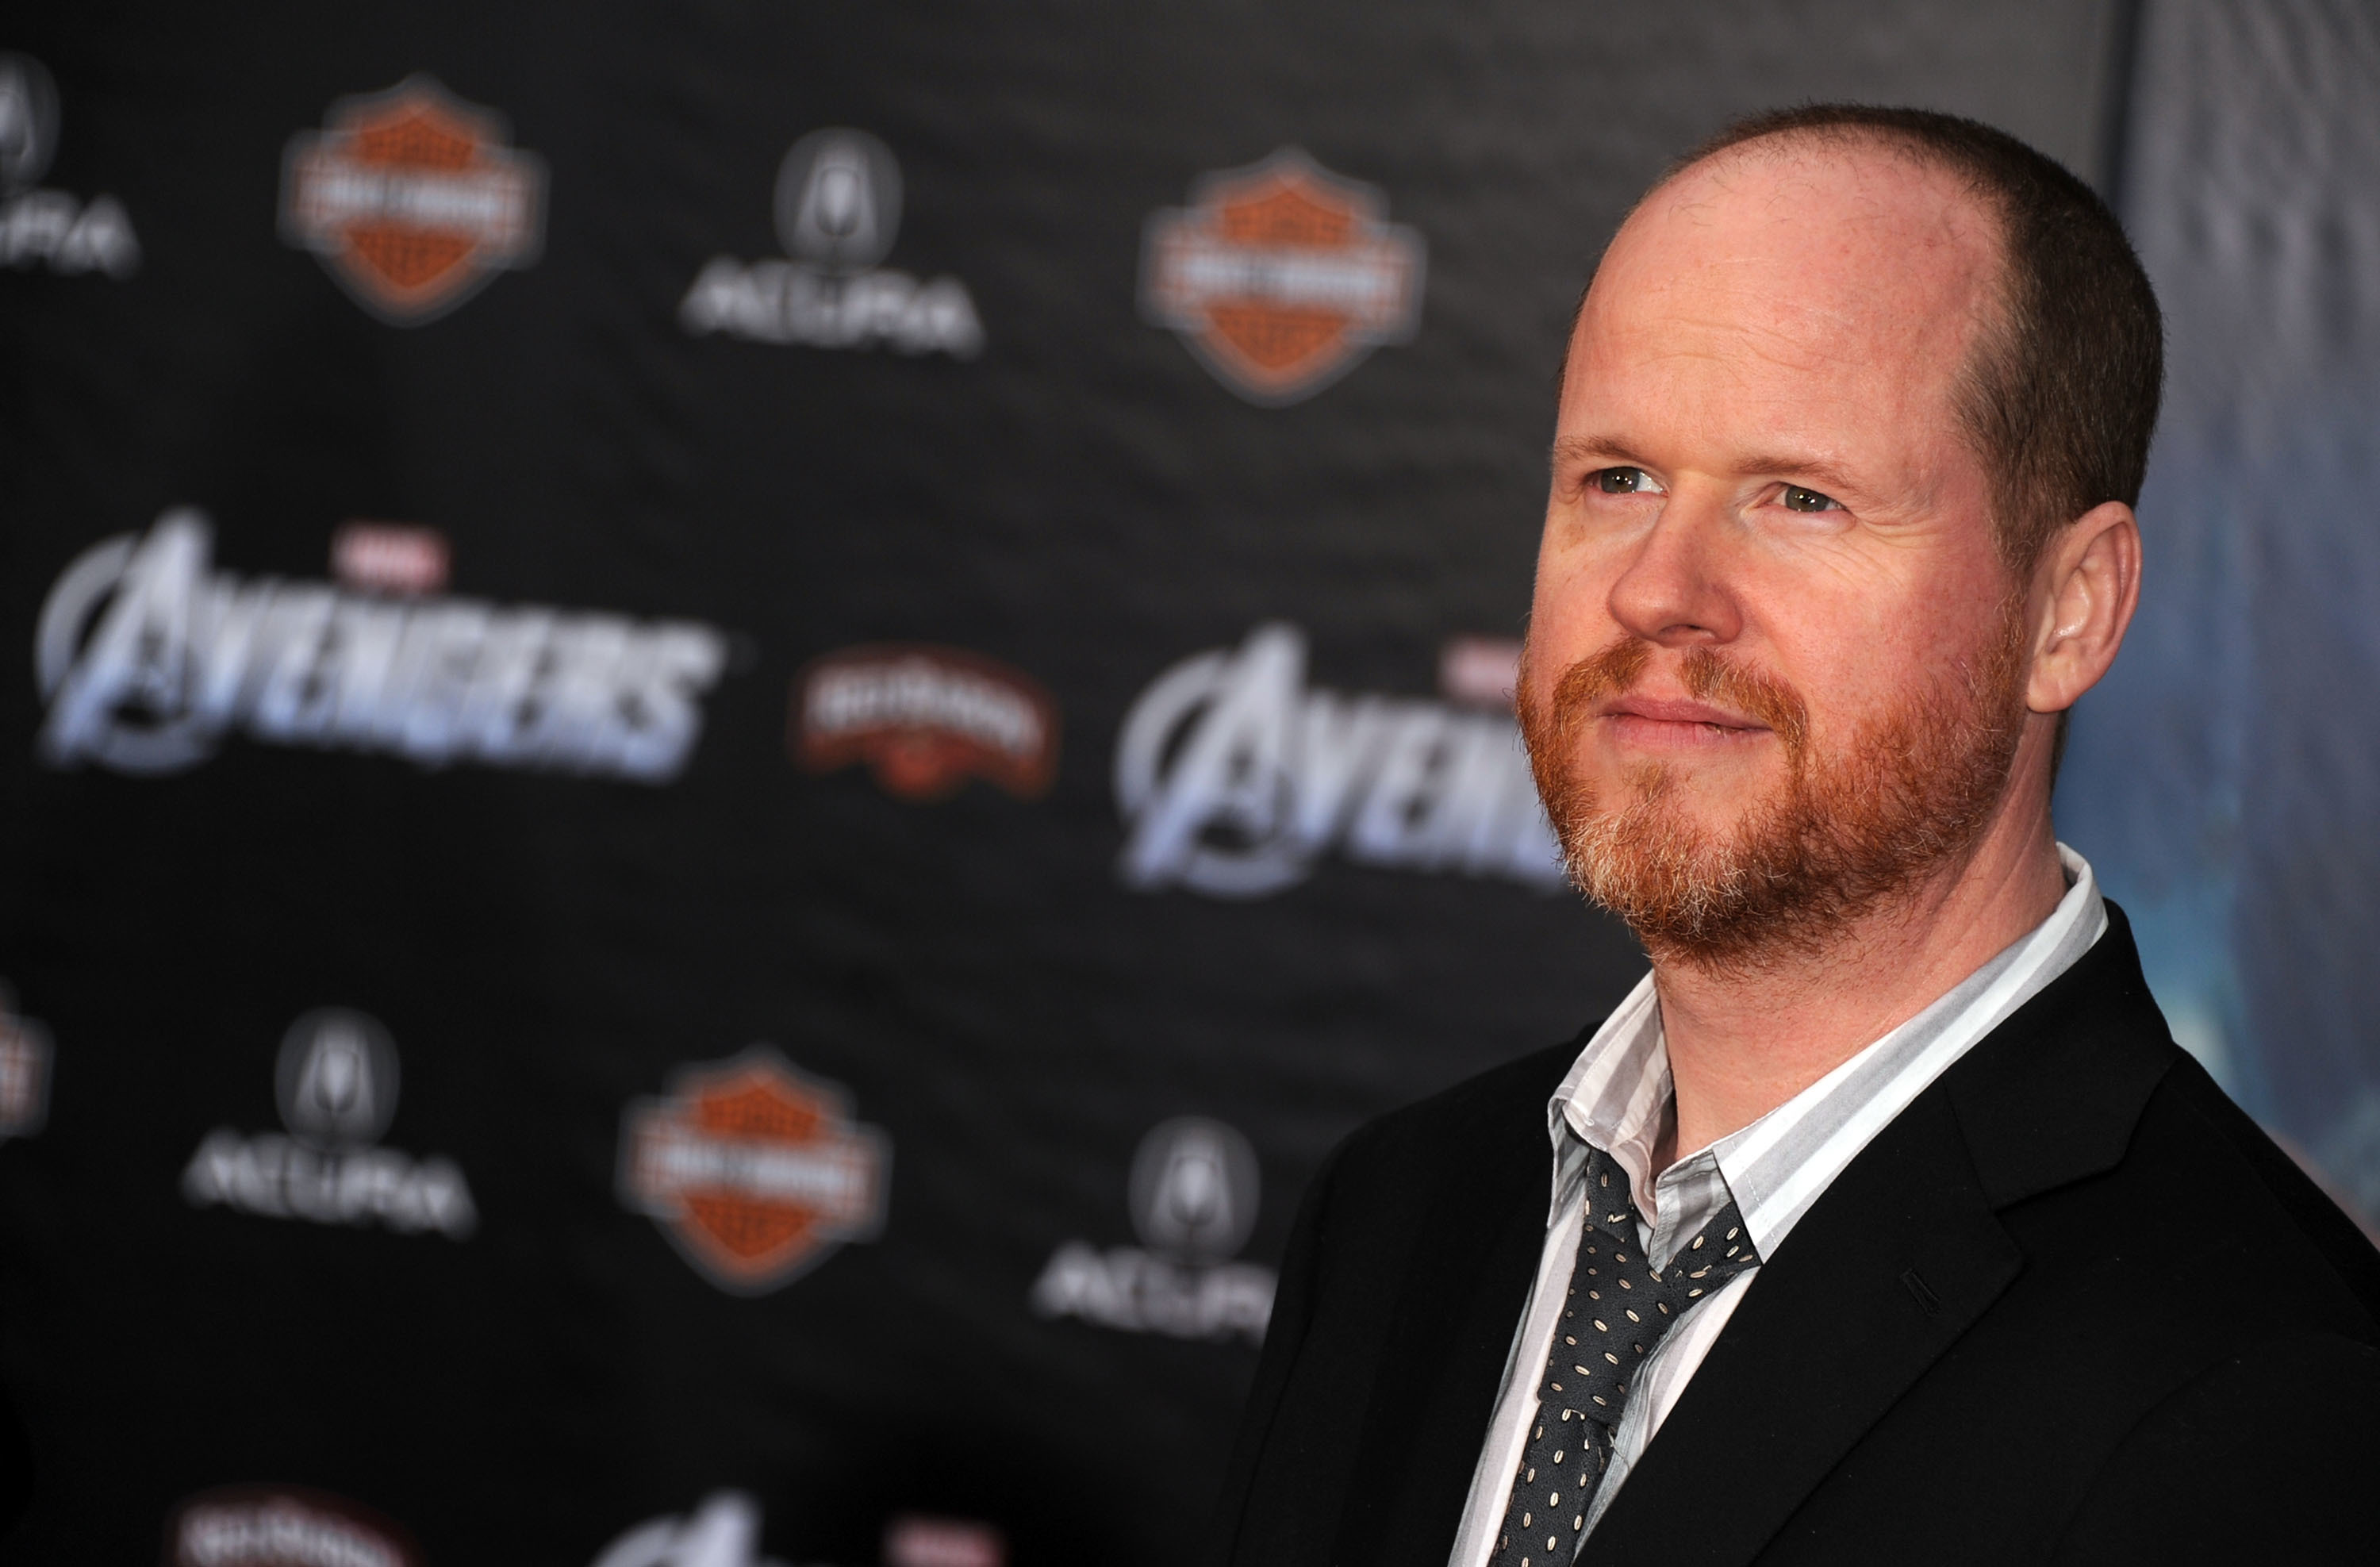 Joss Whedon to direct Batgirl movie